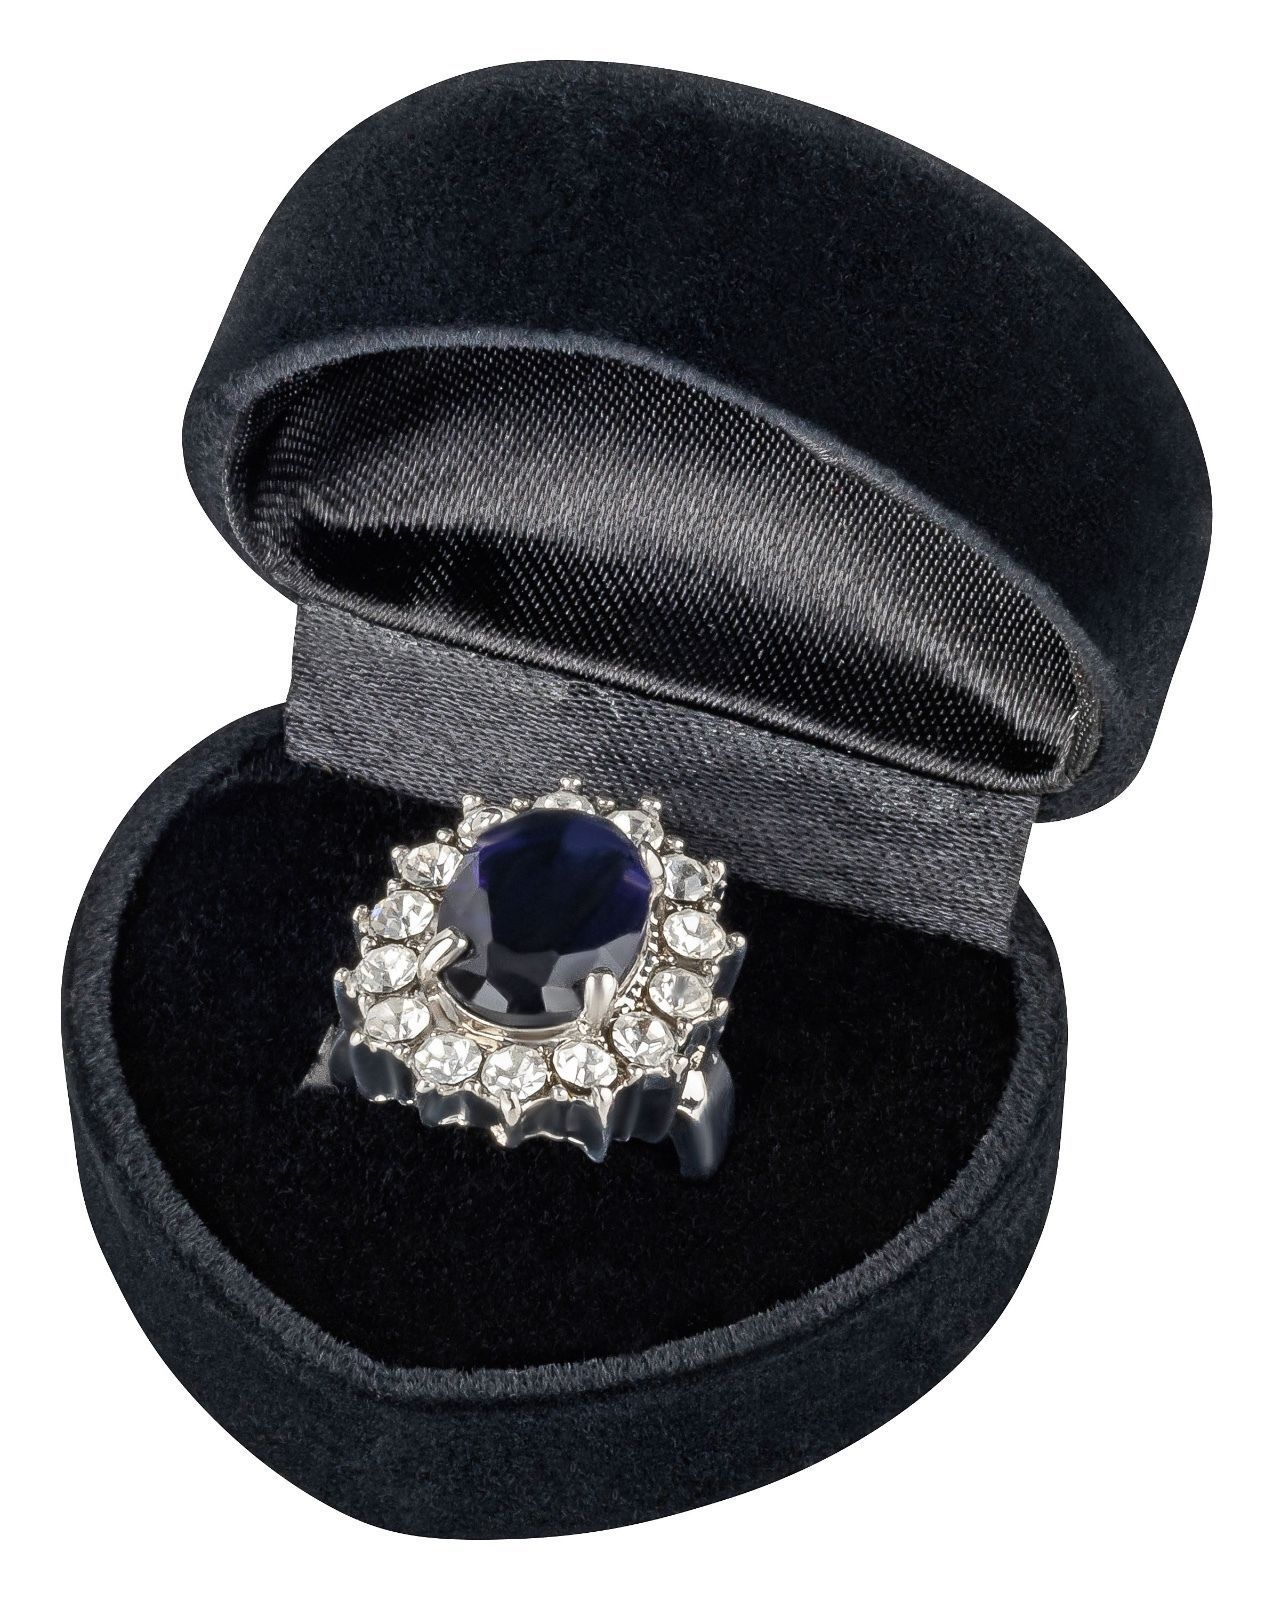 Lady Diana's Ring William Kate Verlobungsring Zirkonia in edler Geschenkbox